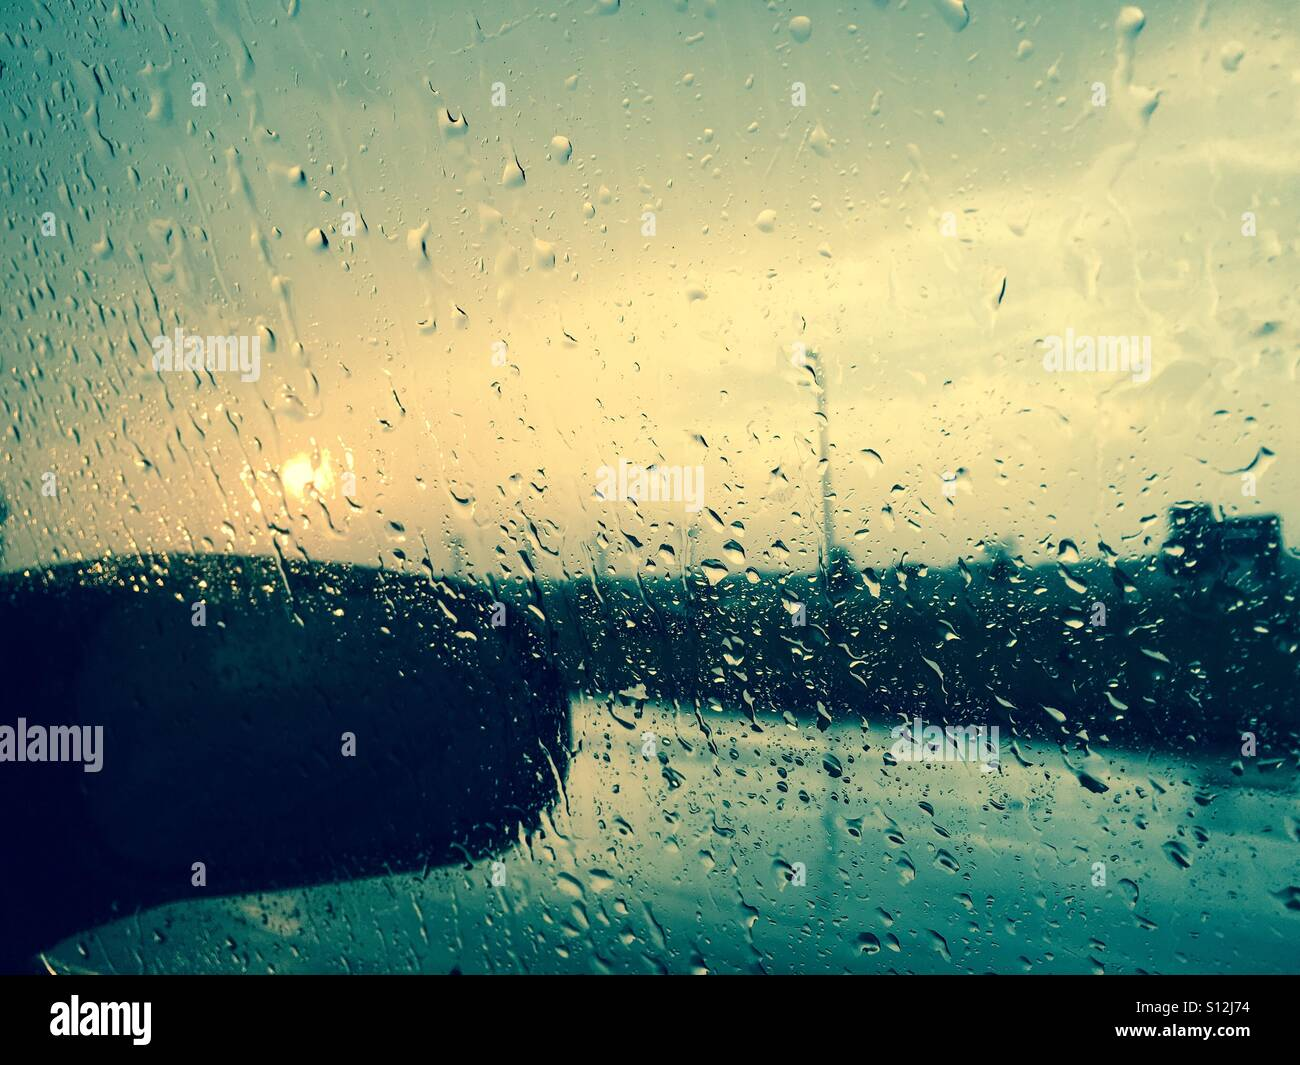 rainy-weather-in-columbus-ohio-at-twilight-noir-instagram-grunge-feel-S12J74.jpg